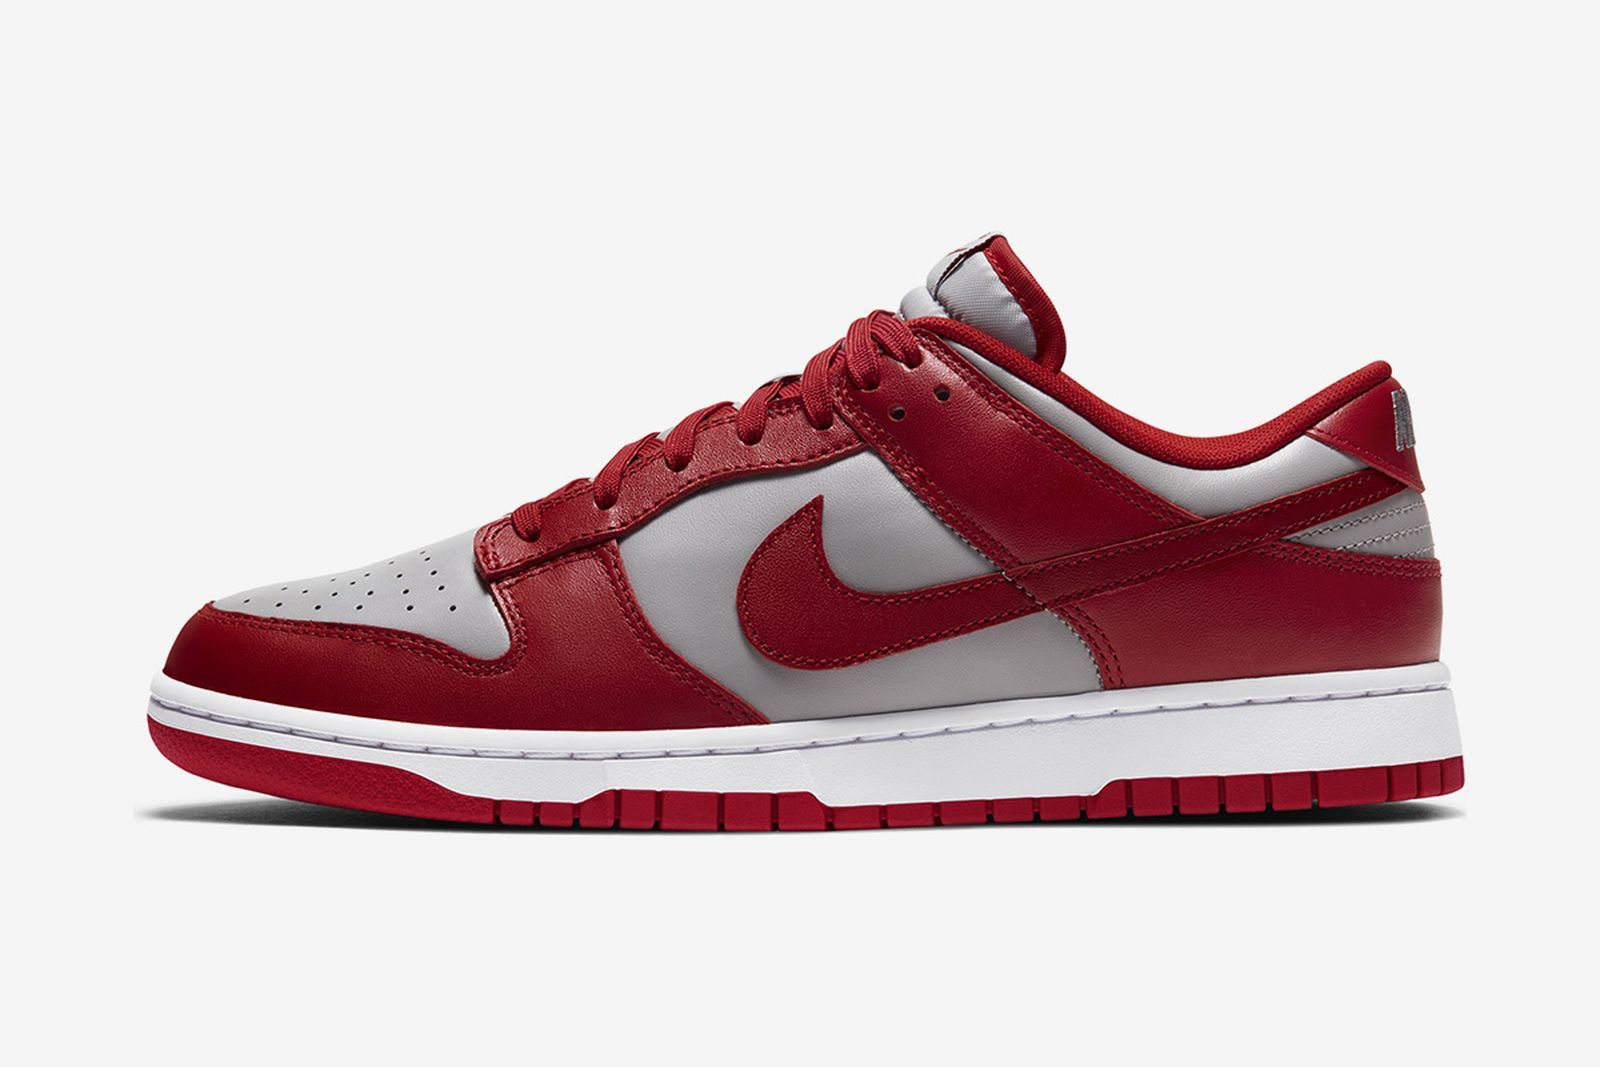 nike-dunk-spring-2021-release-date-price-1-16